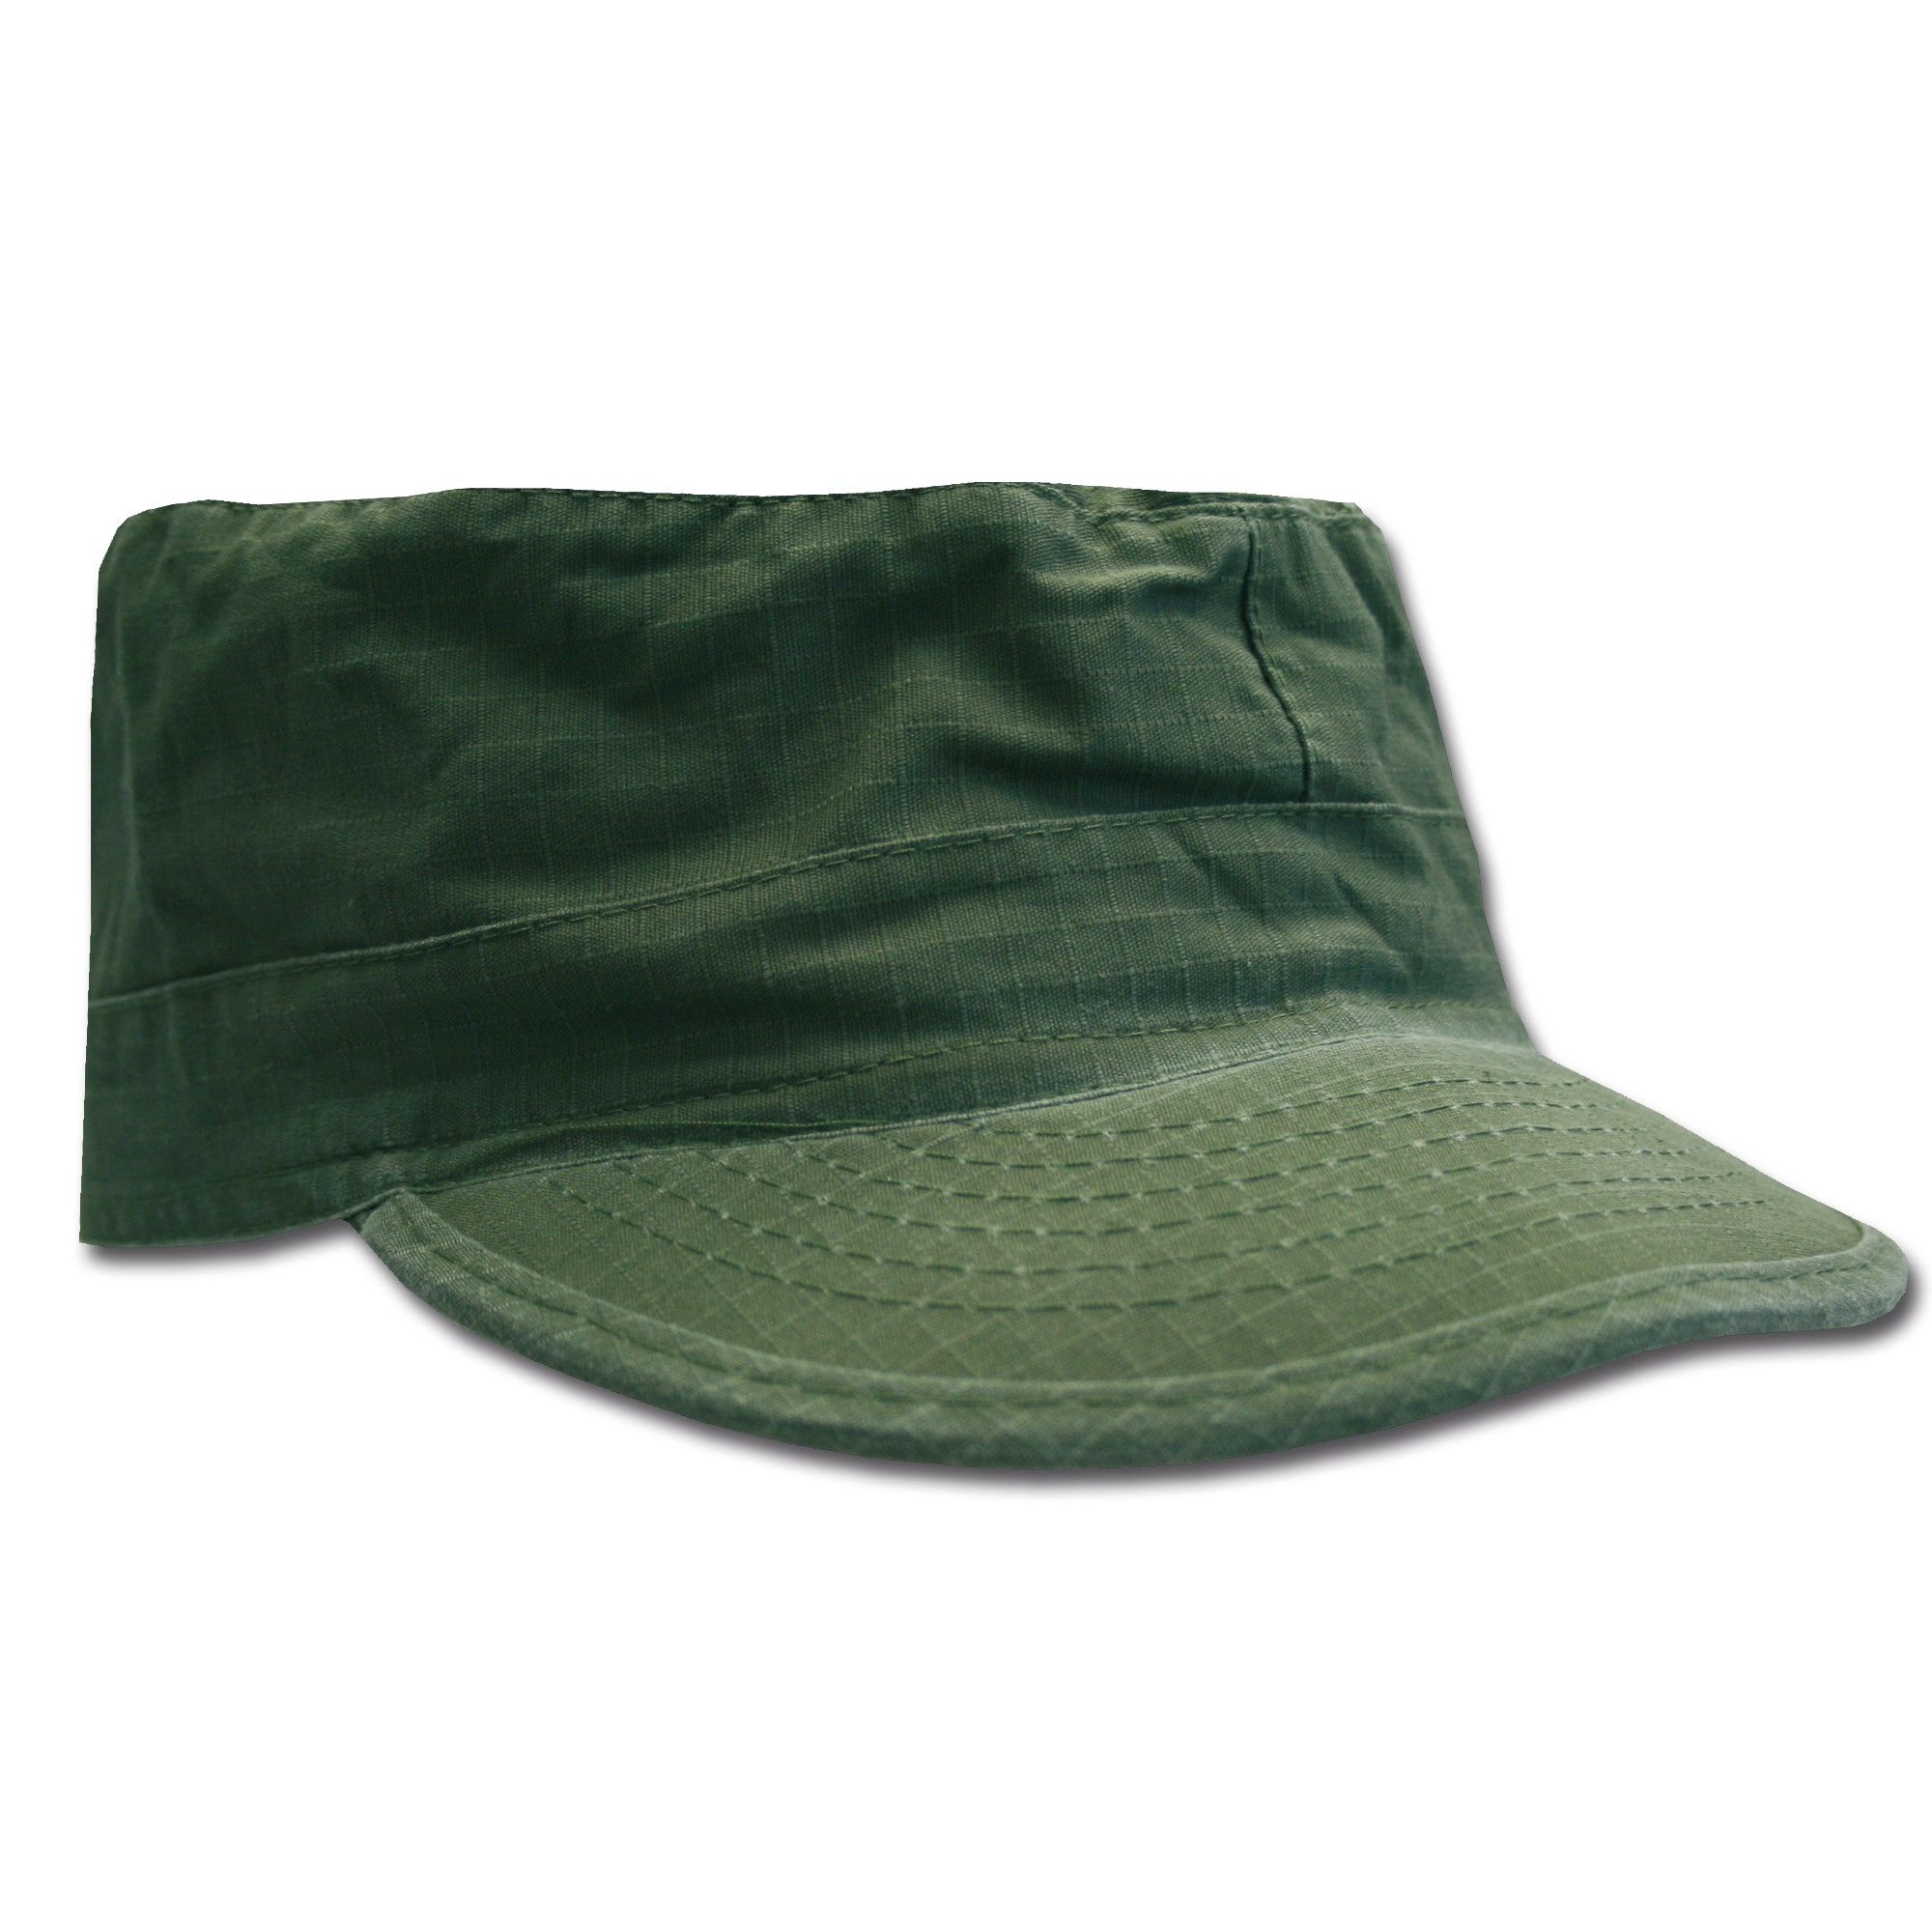 BDU Cap olive washed Ripstop